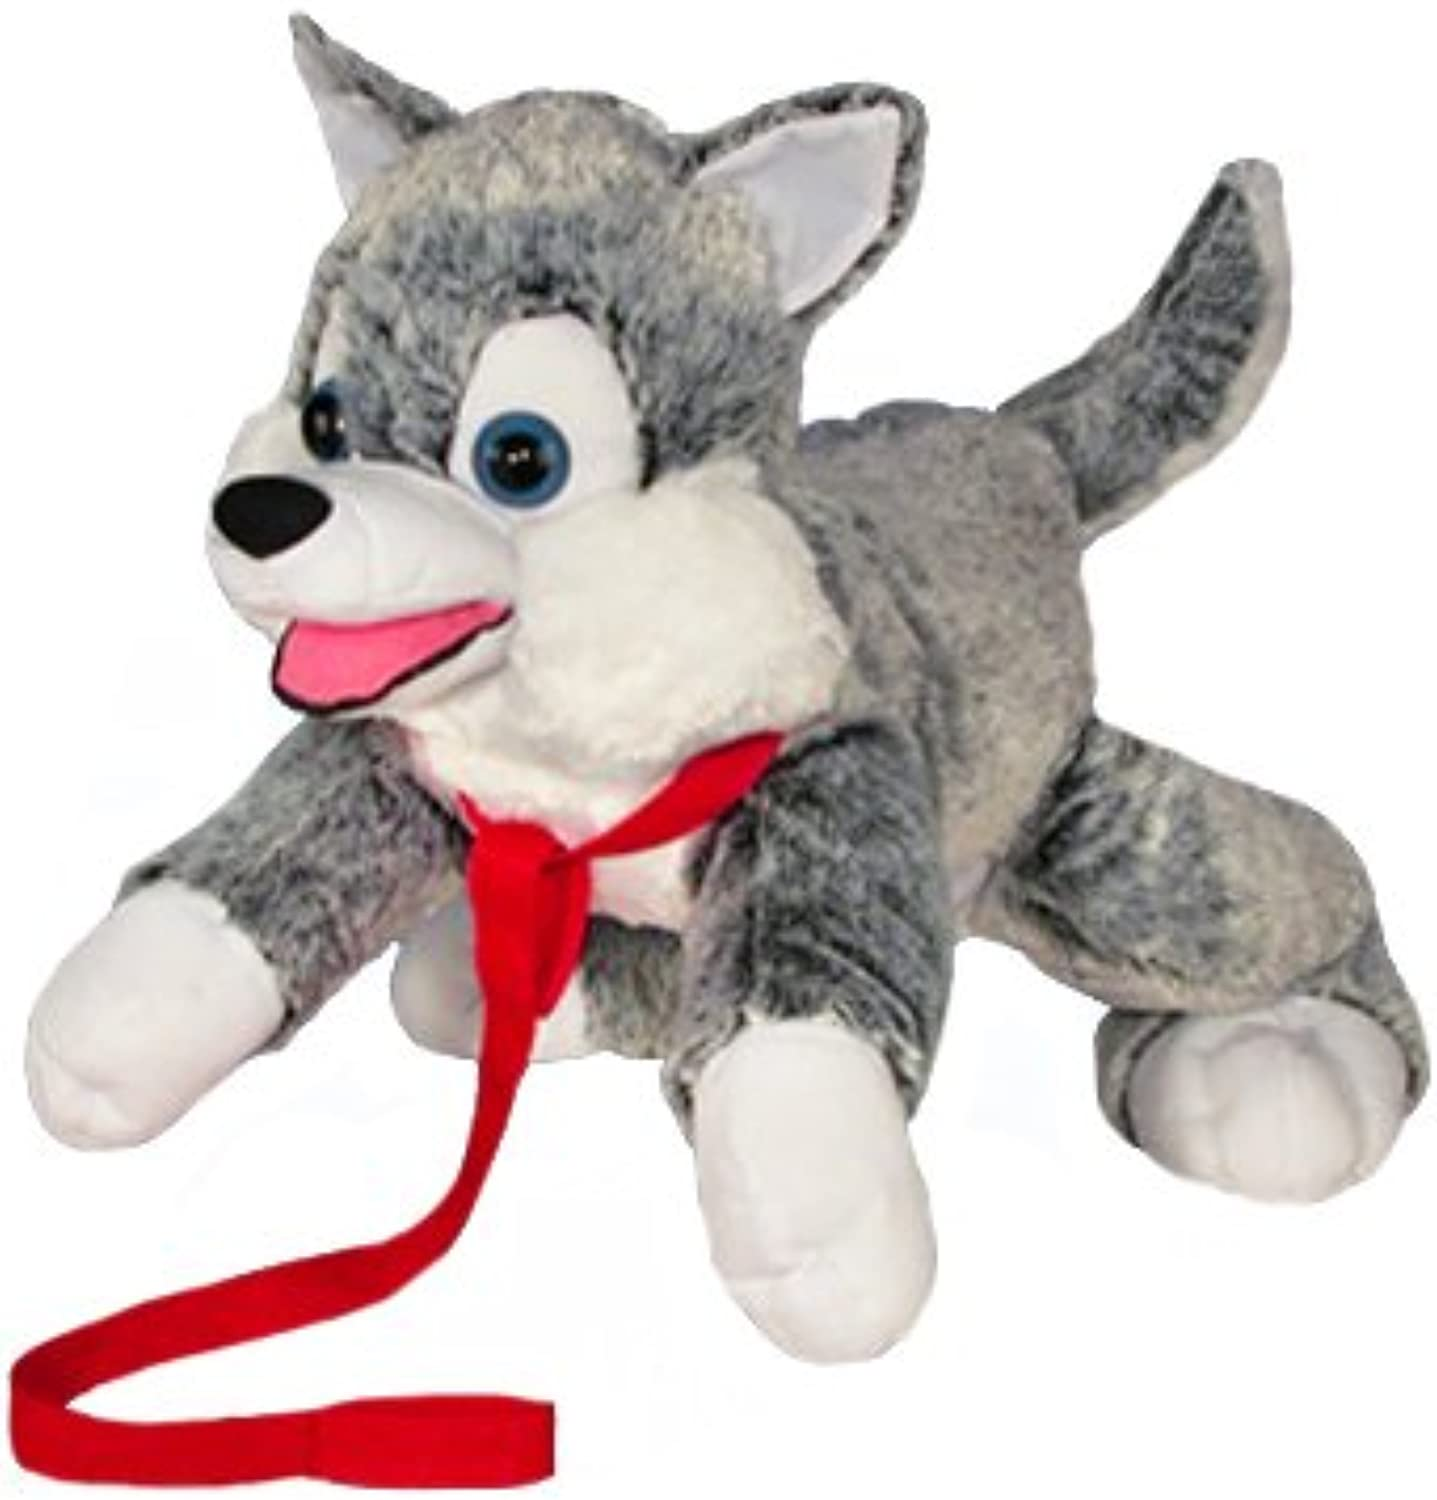 ToySource 3-258 S Rupert The Husky Dog Collectible Plush, Silver White, Size 14